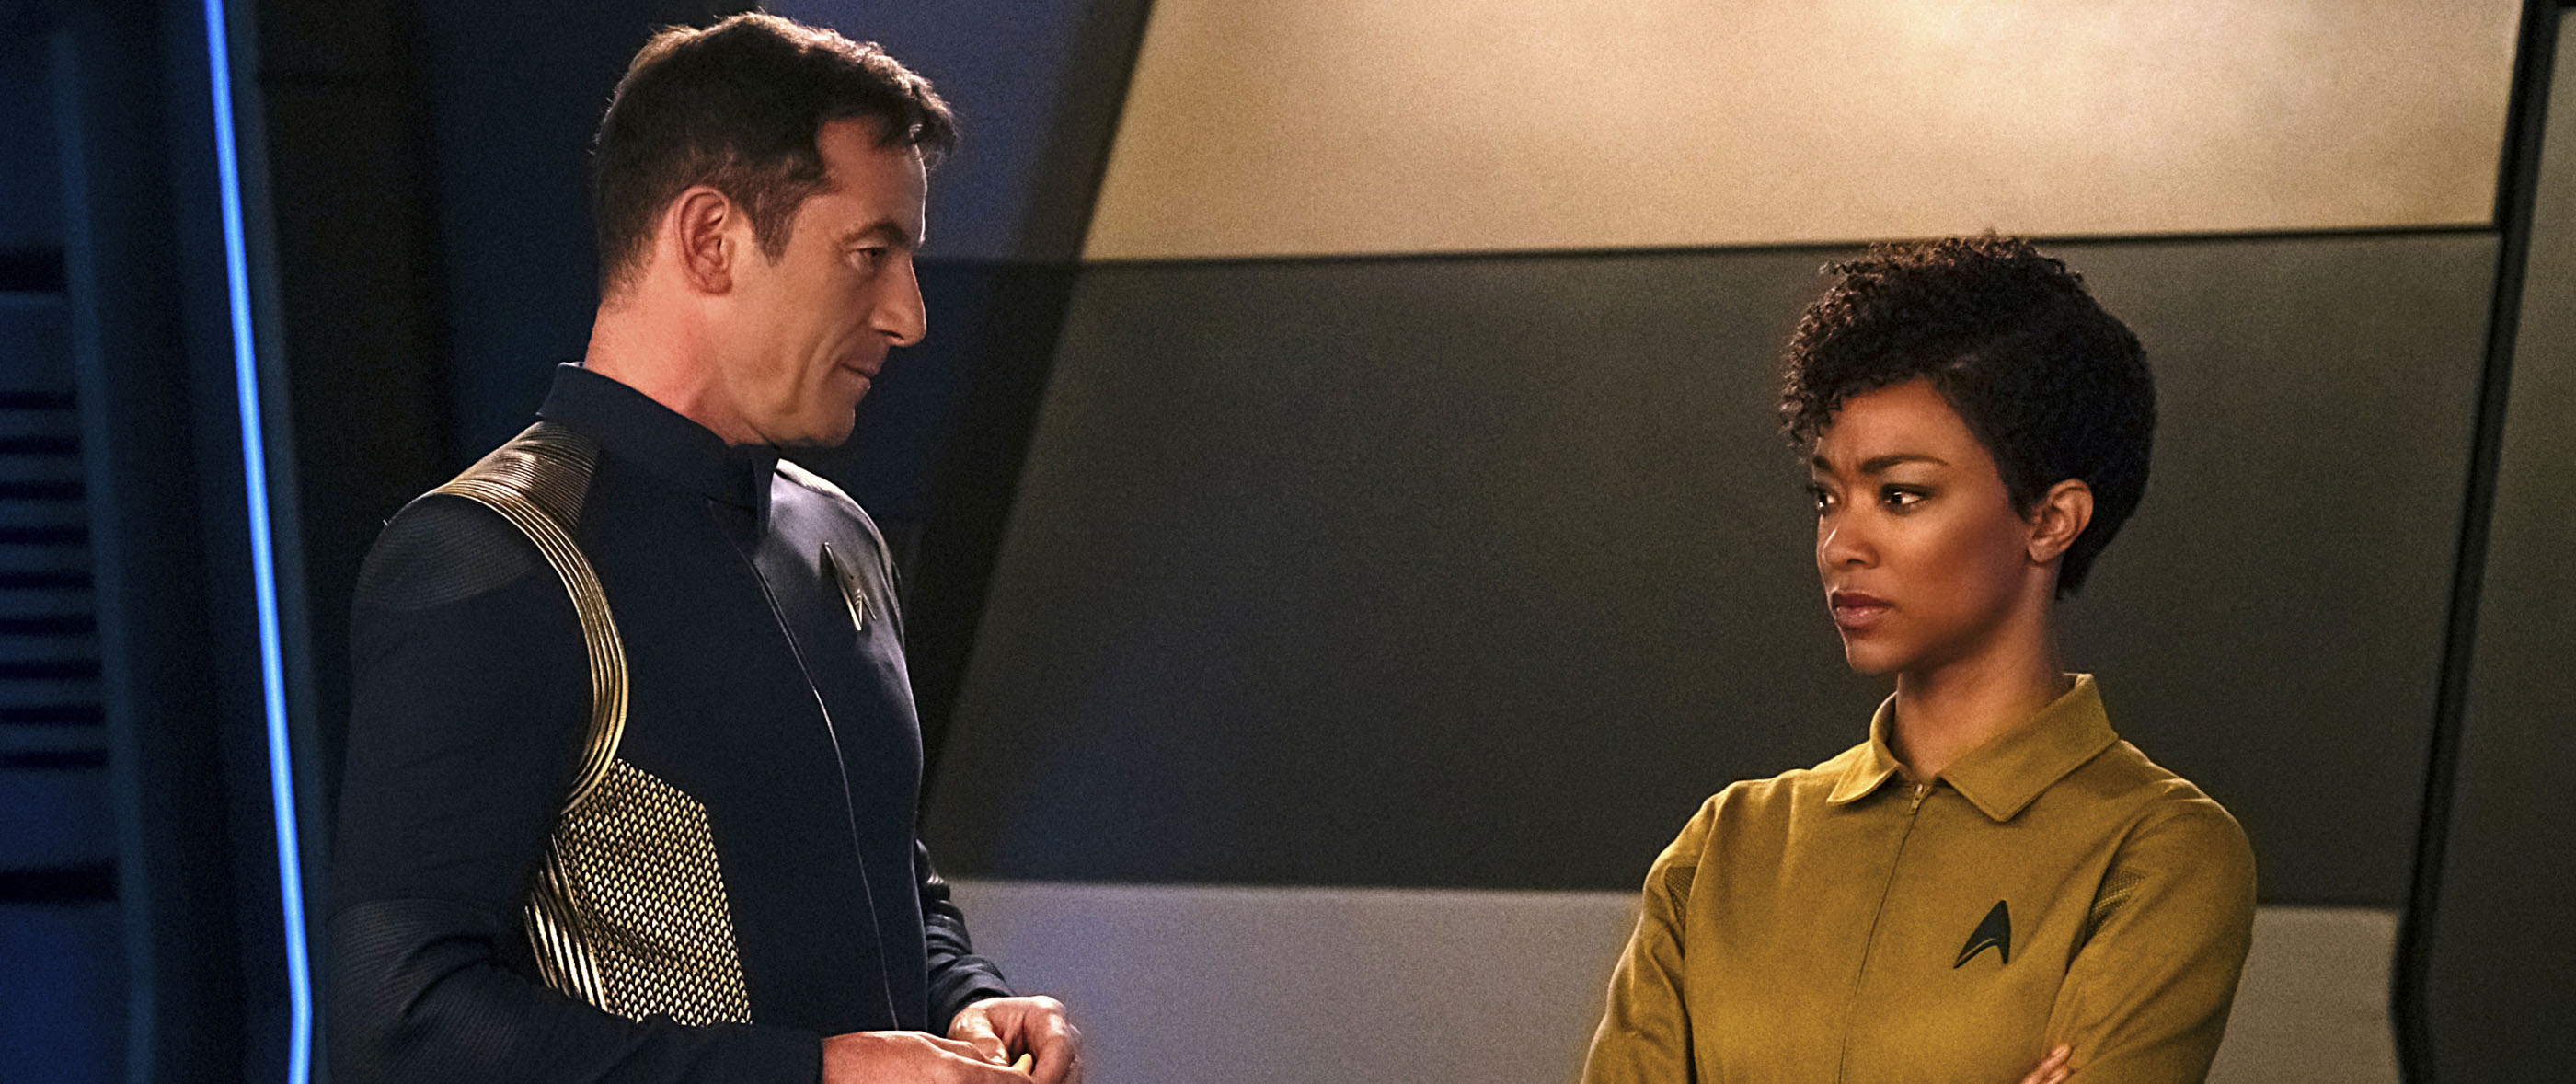 Star Trek: Discovery's Third Episode Draws Its Inspiration From Everywhere Except Star Trek